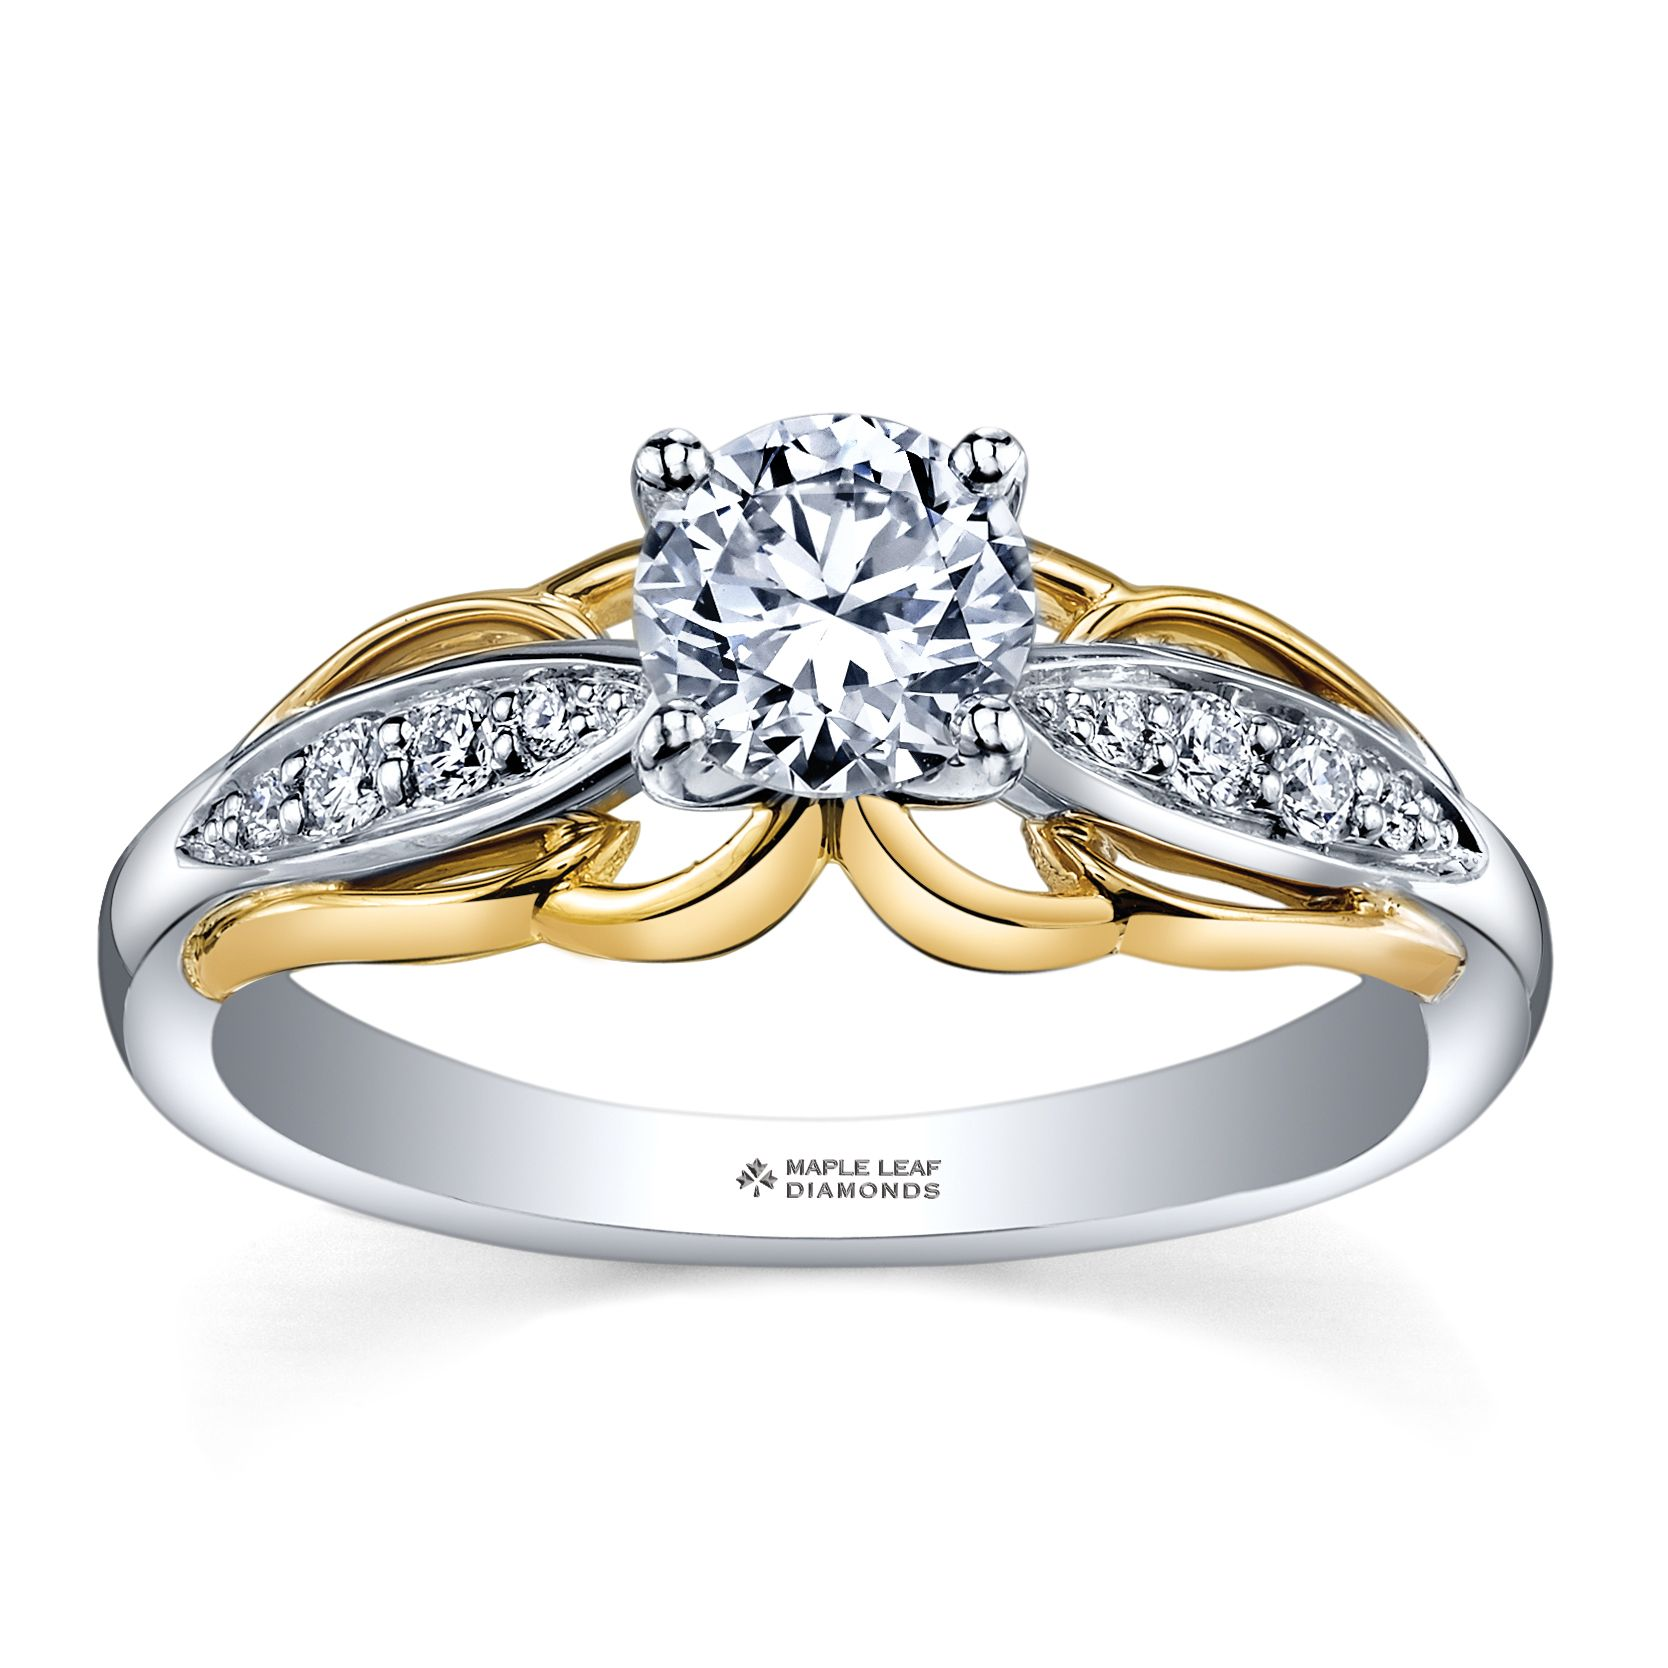 Canadian diamond engagement band with yellow gold accents